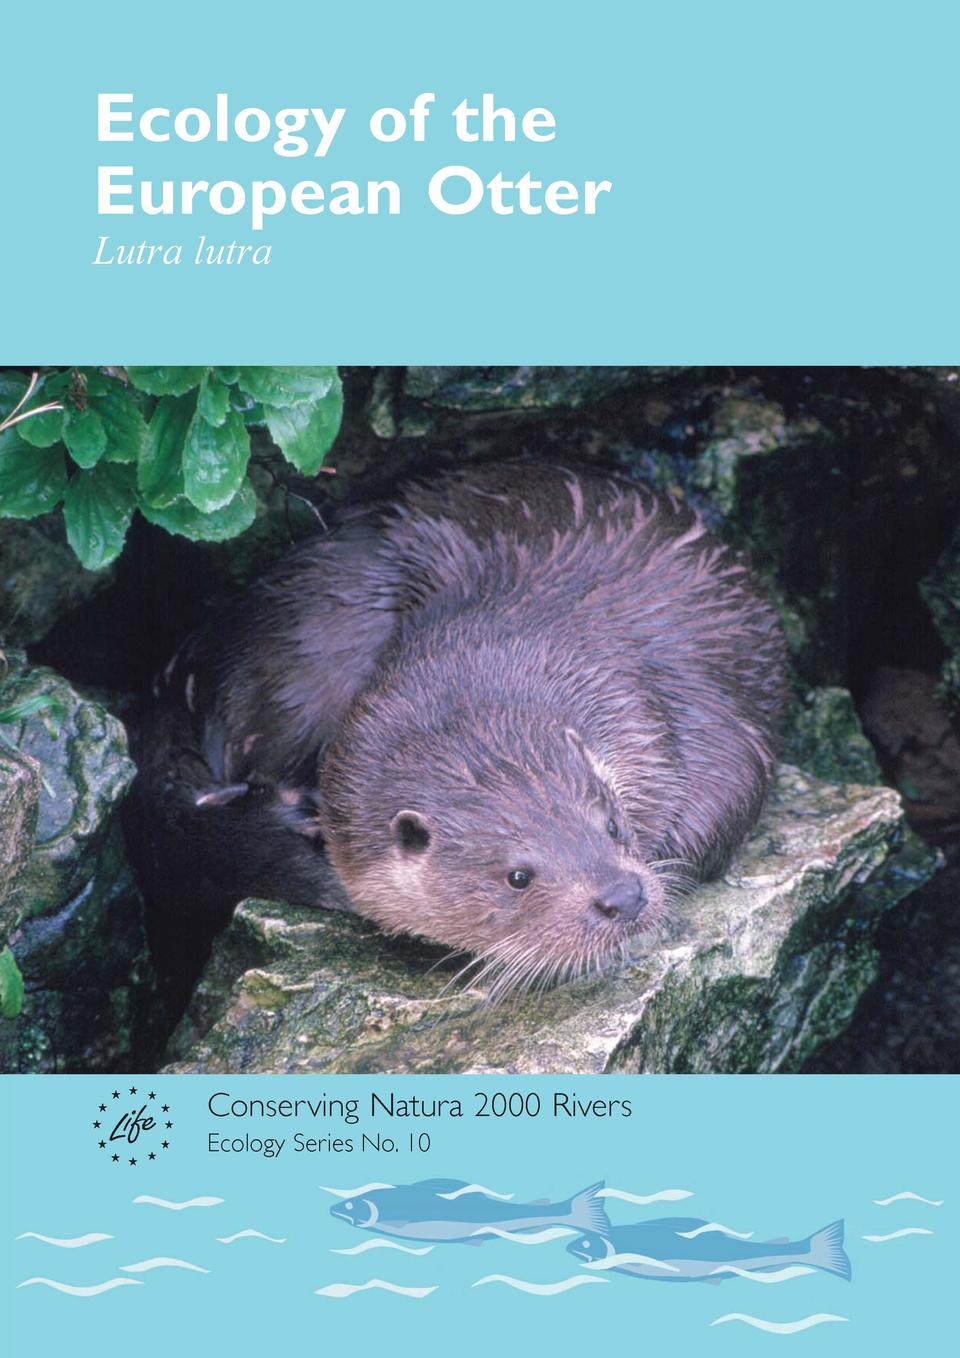 Ecology of the European Otter Lutra lutra  Conserving Natura 2000 Rivers Ecology Series No. 10